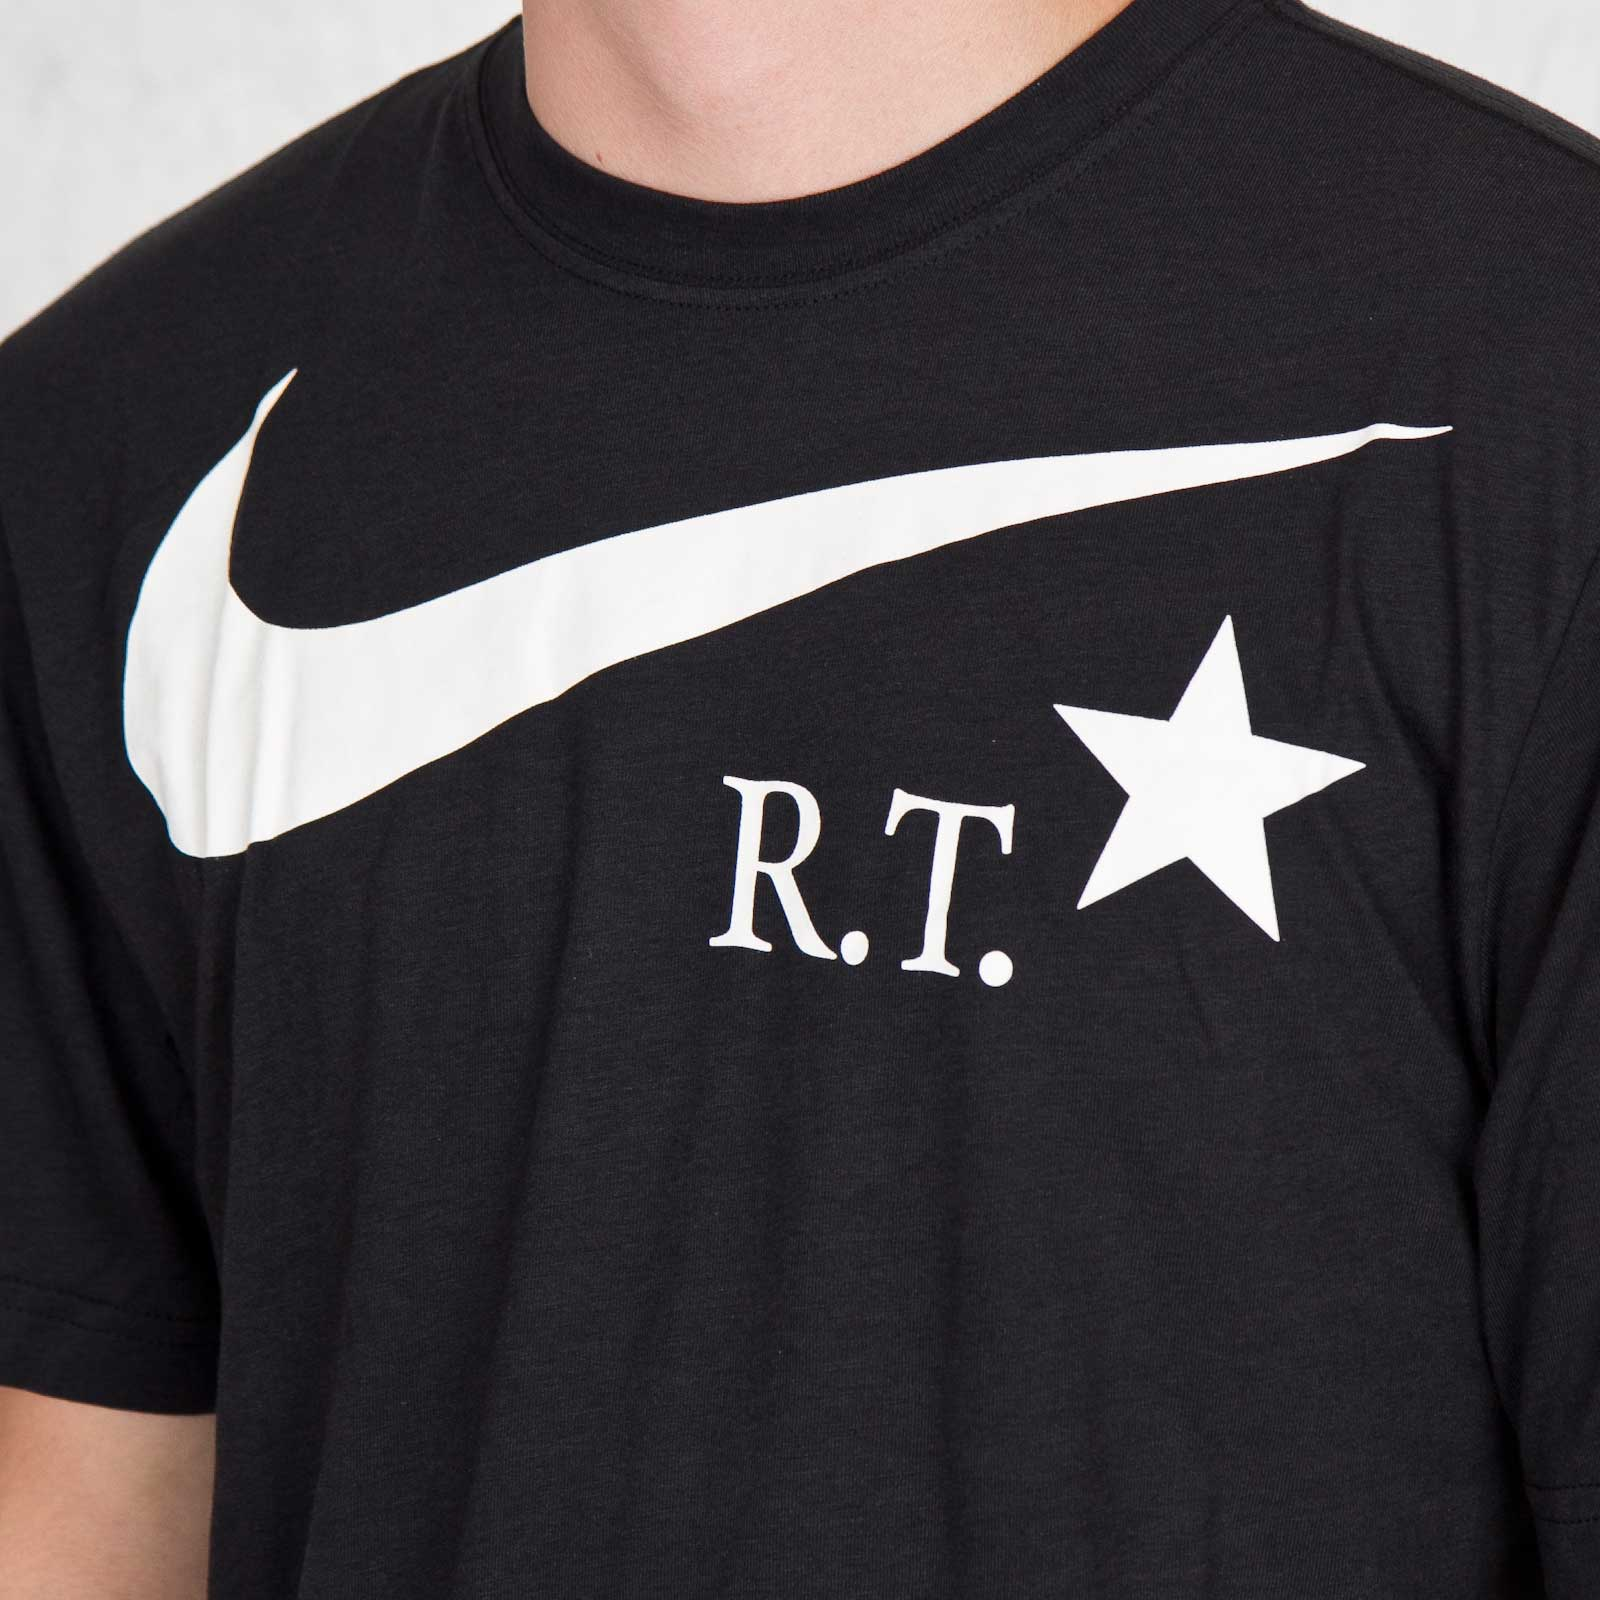 Plain Nike Logo T Shirts Cotswold Hire